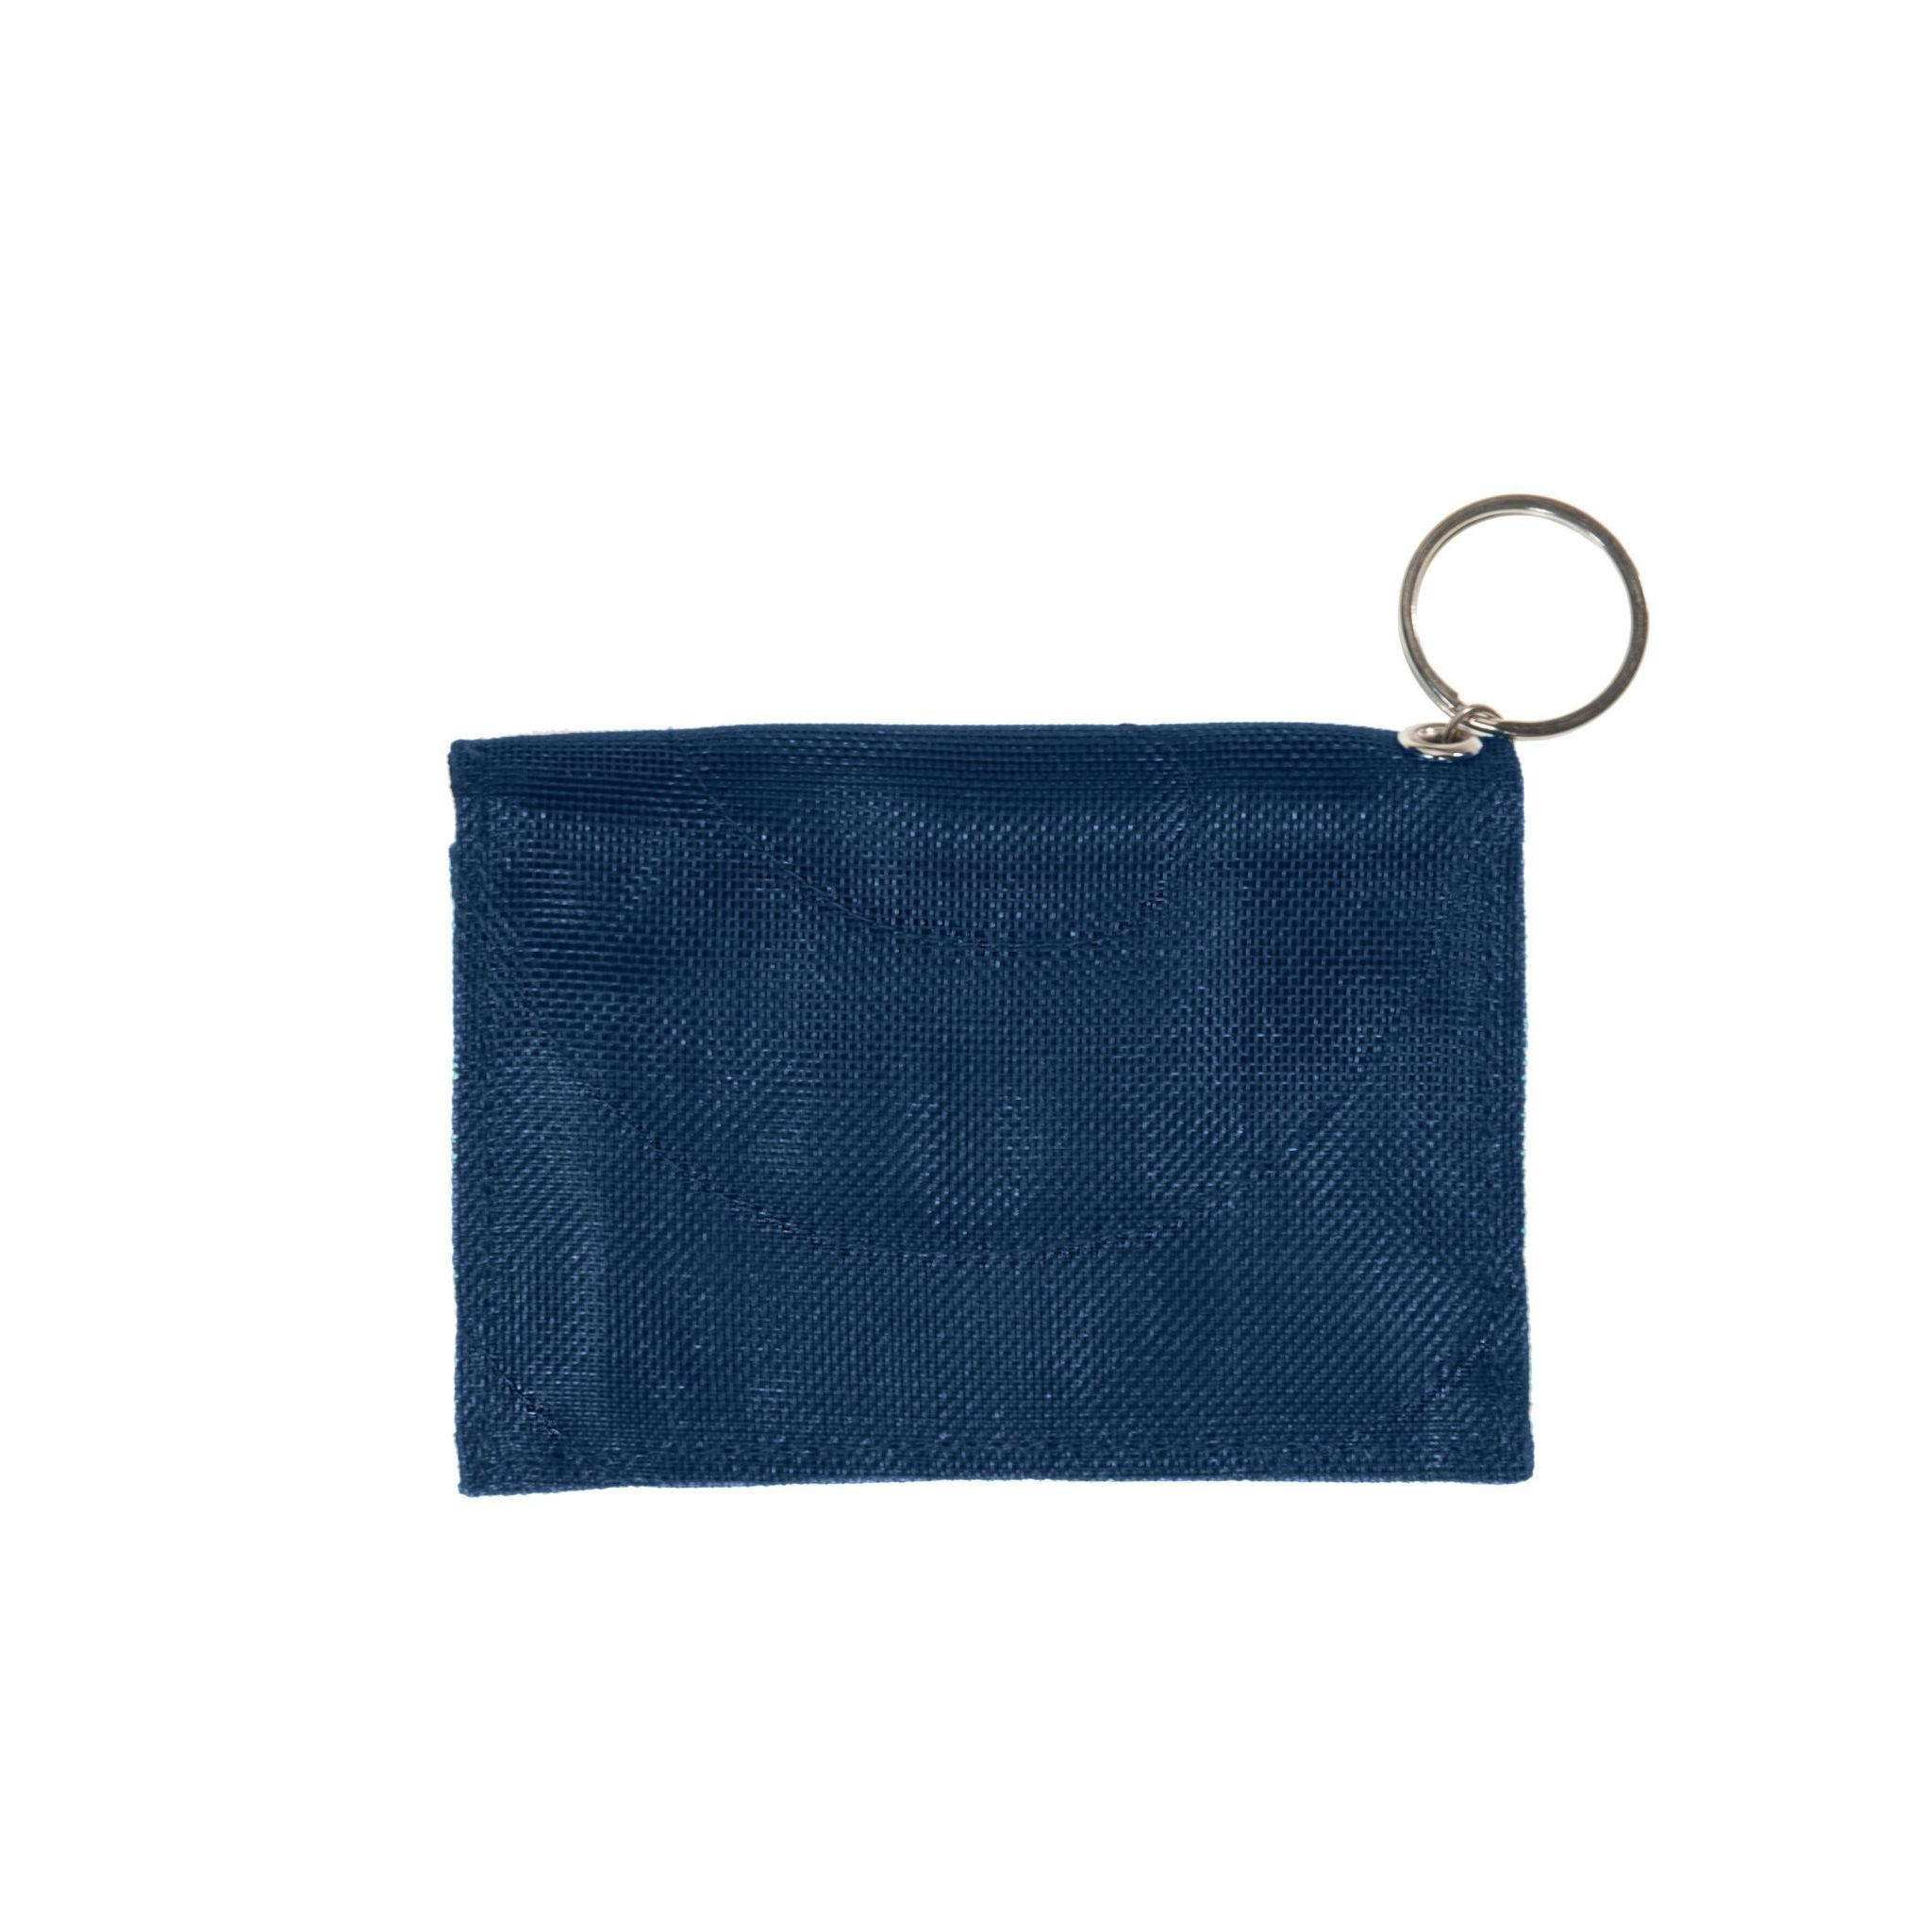 HHPLIFT Keychain Wallet Navy